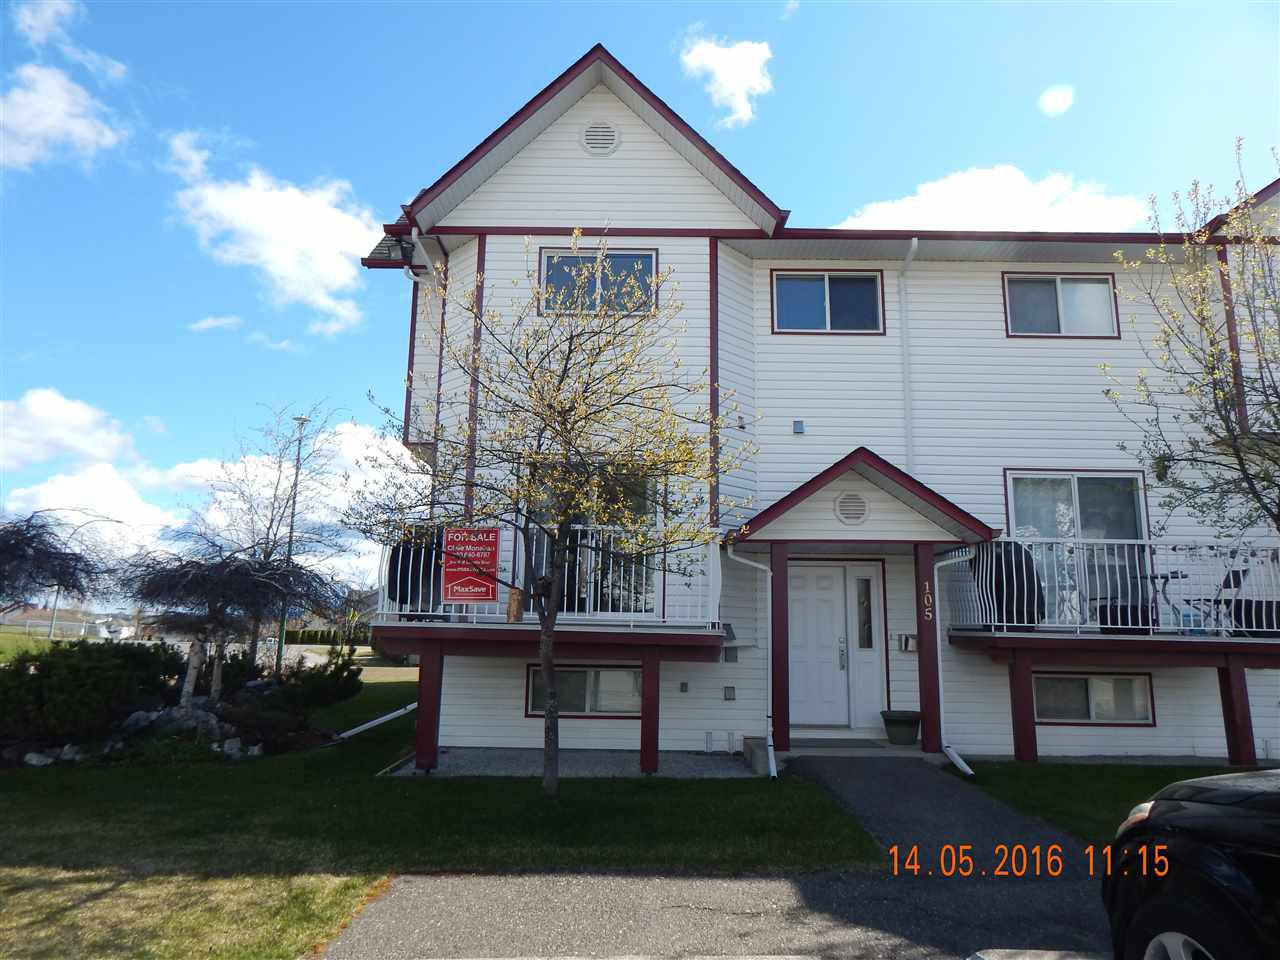 """Main Photo: 105 3015 ST ANNE Crescent in Prince George: St. Lawrence Heights Townhouse for sale in """"SOUTHRIDGE / ST LAWRENCE"""" (PG City South (Zone 74))  : MLS®# R2057311"""